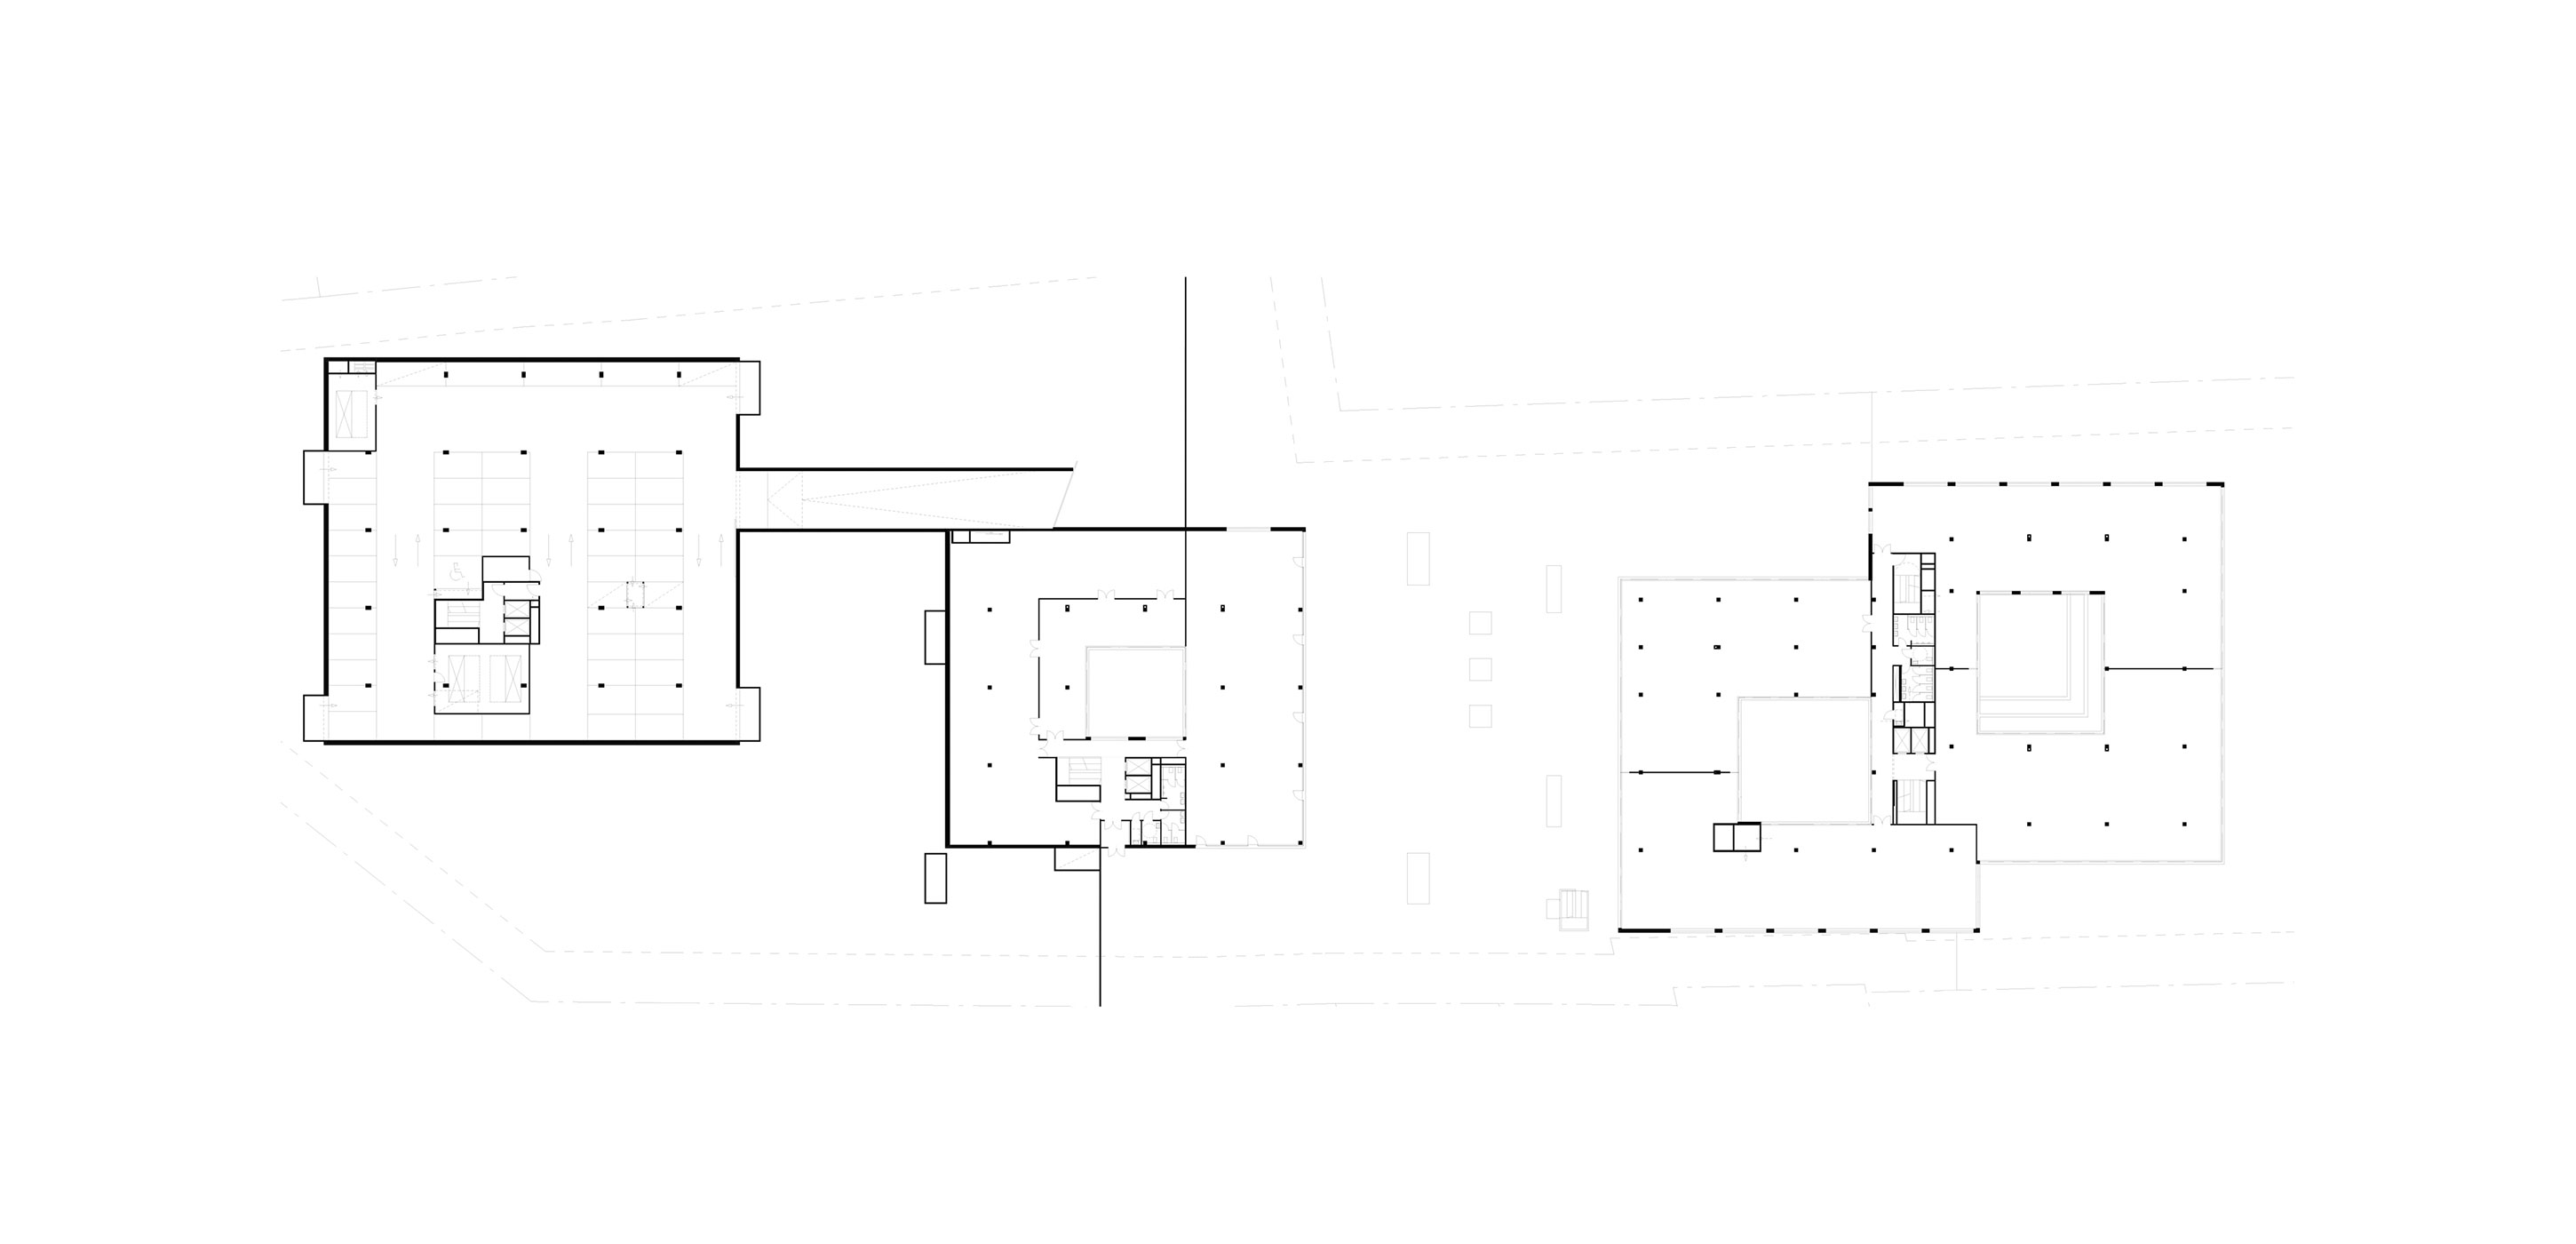 3h architecture n41 office park budapest plan